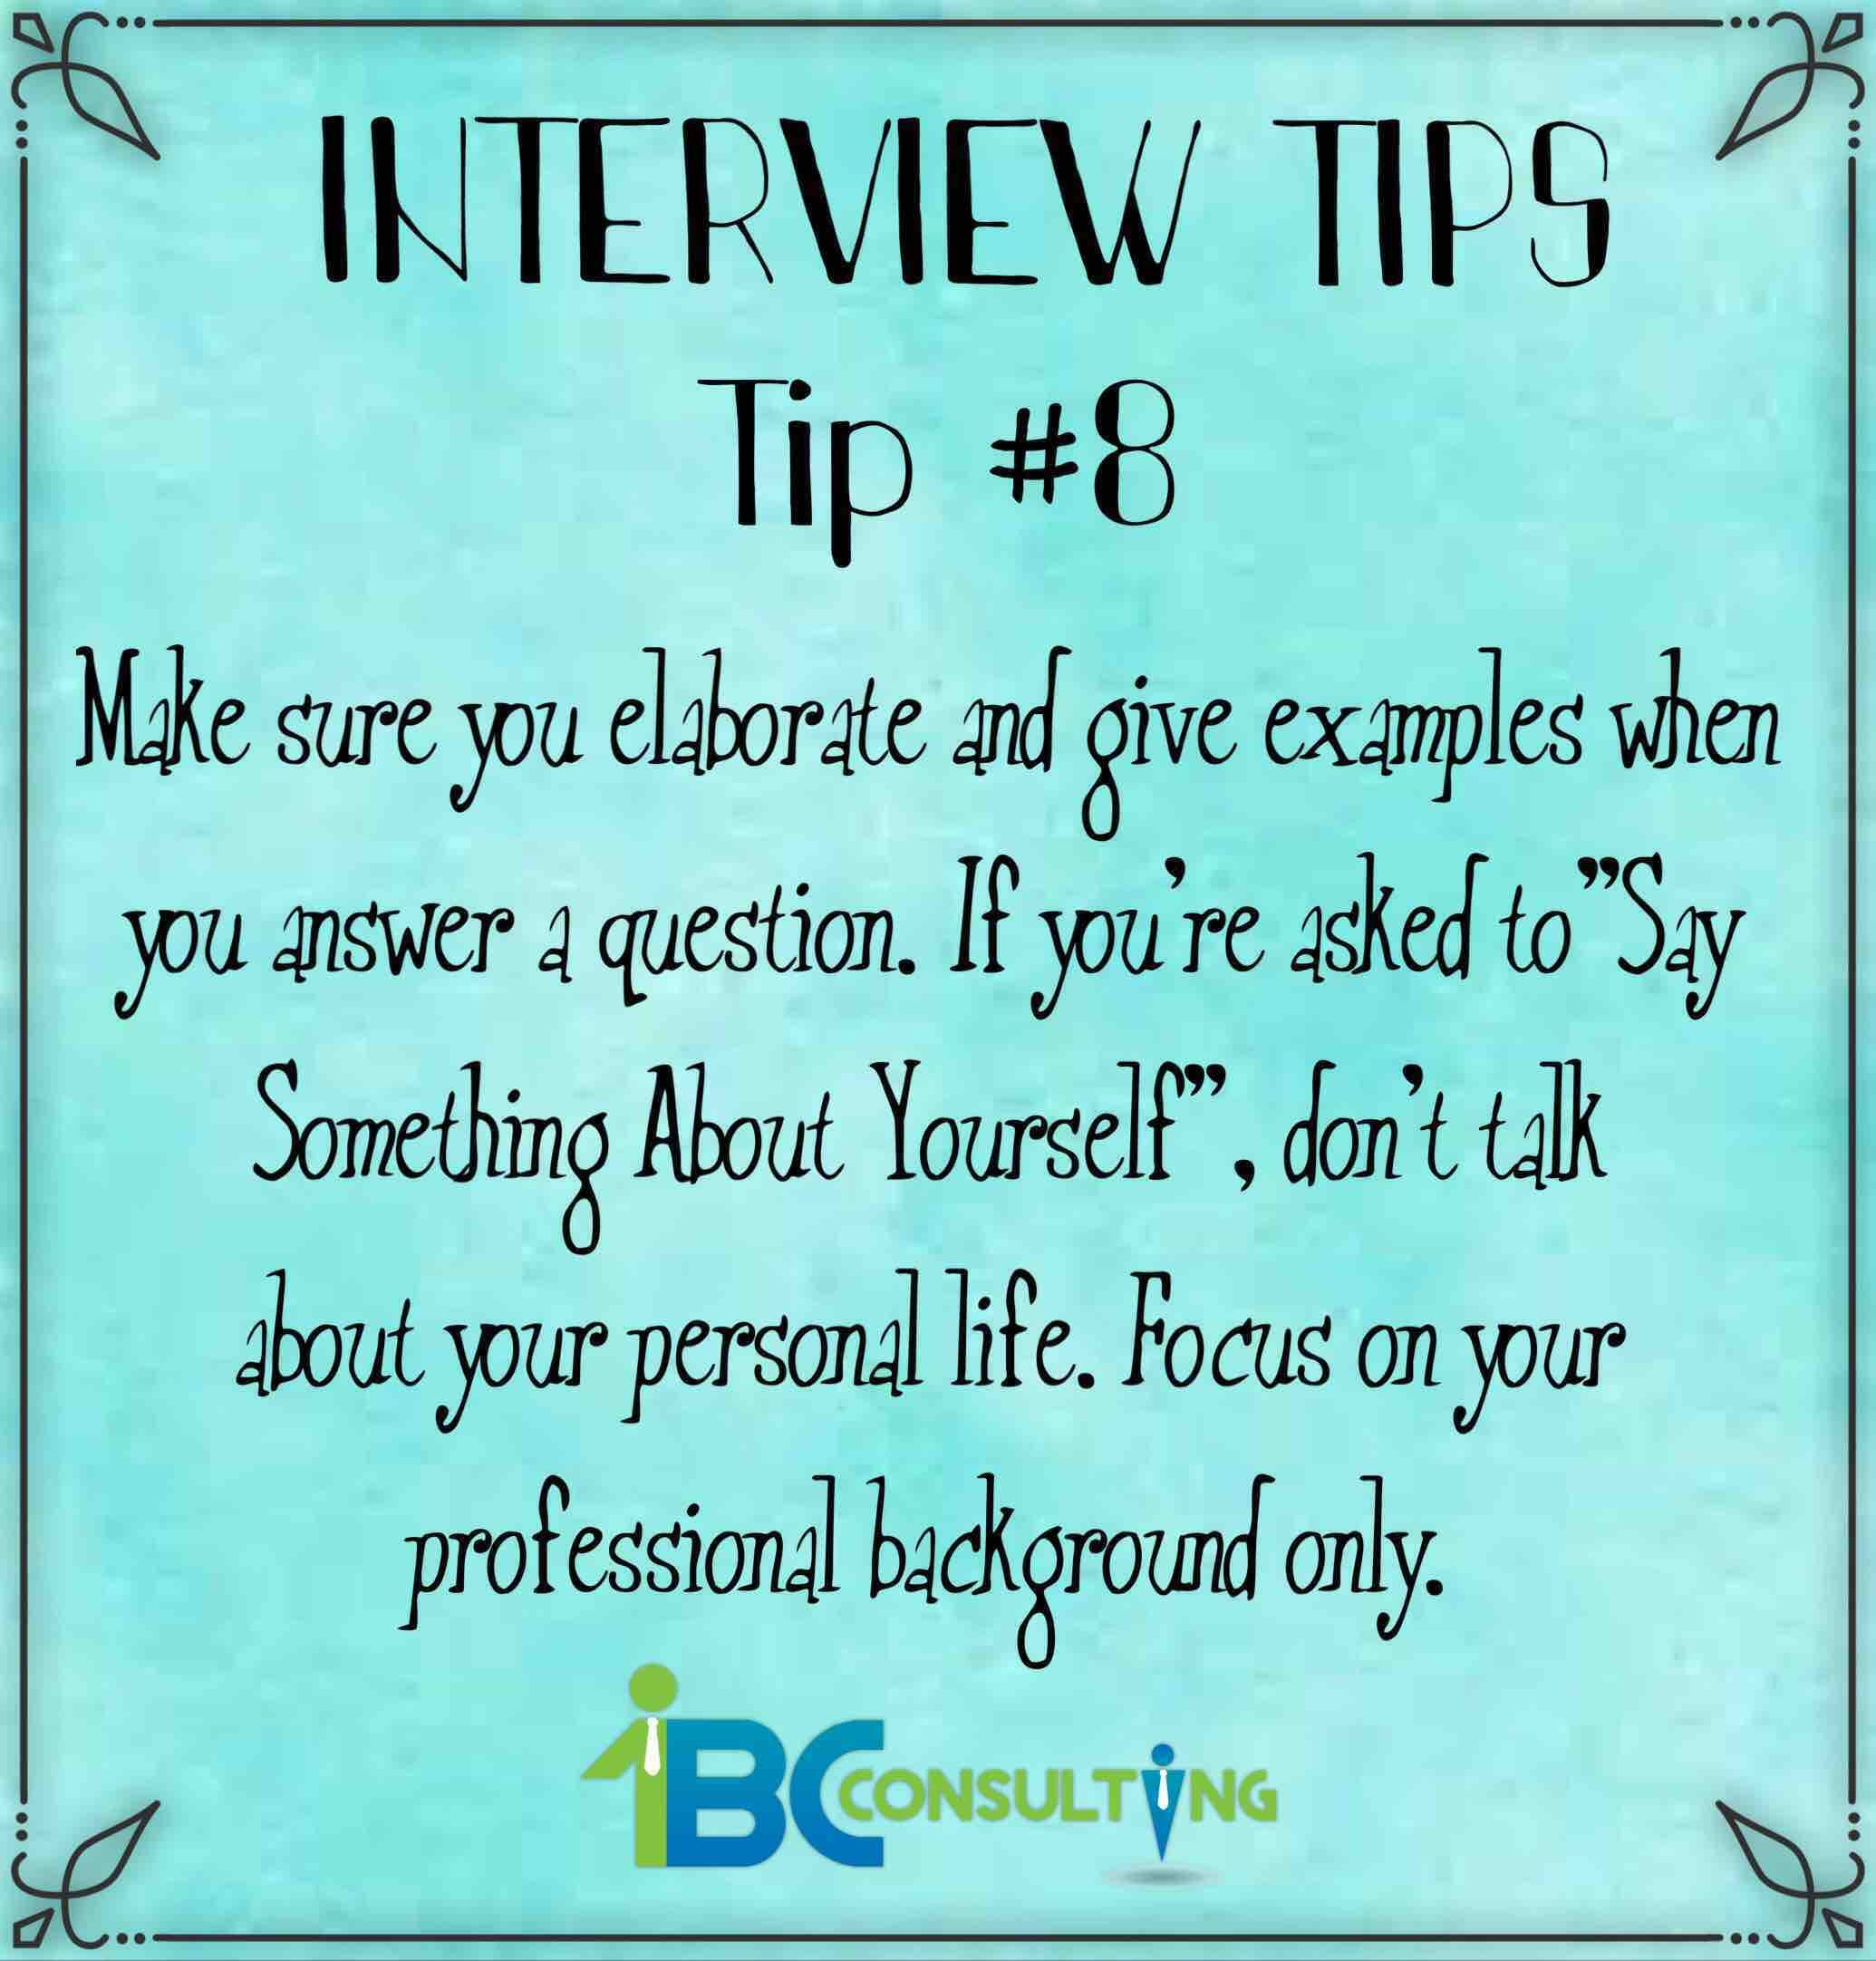 interview-tip-8-1bcconsulting